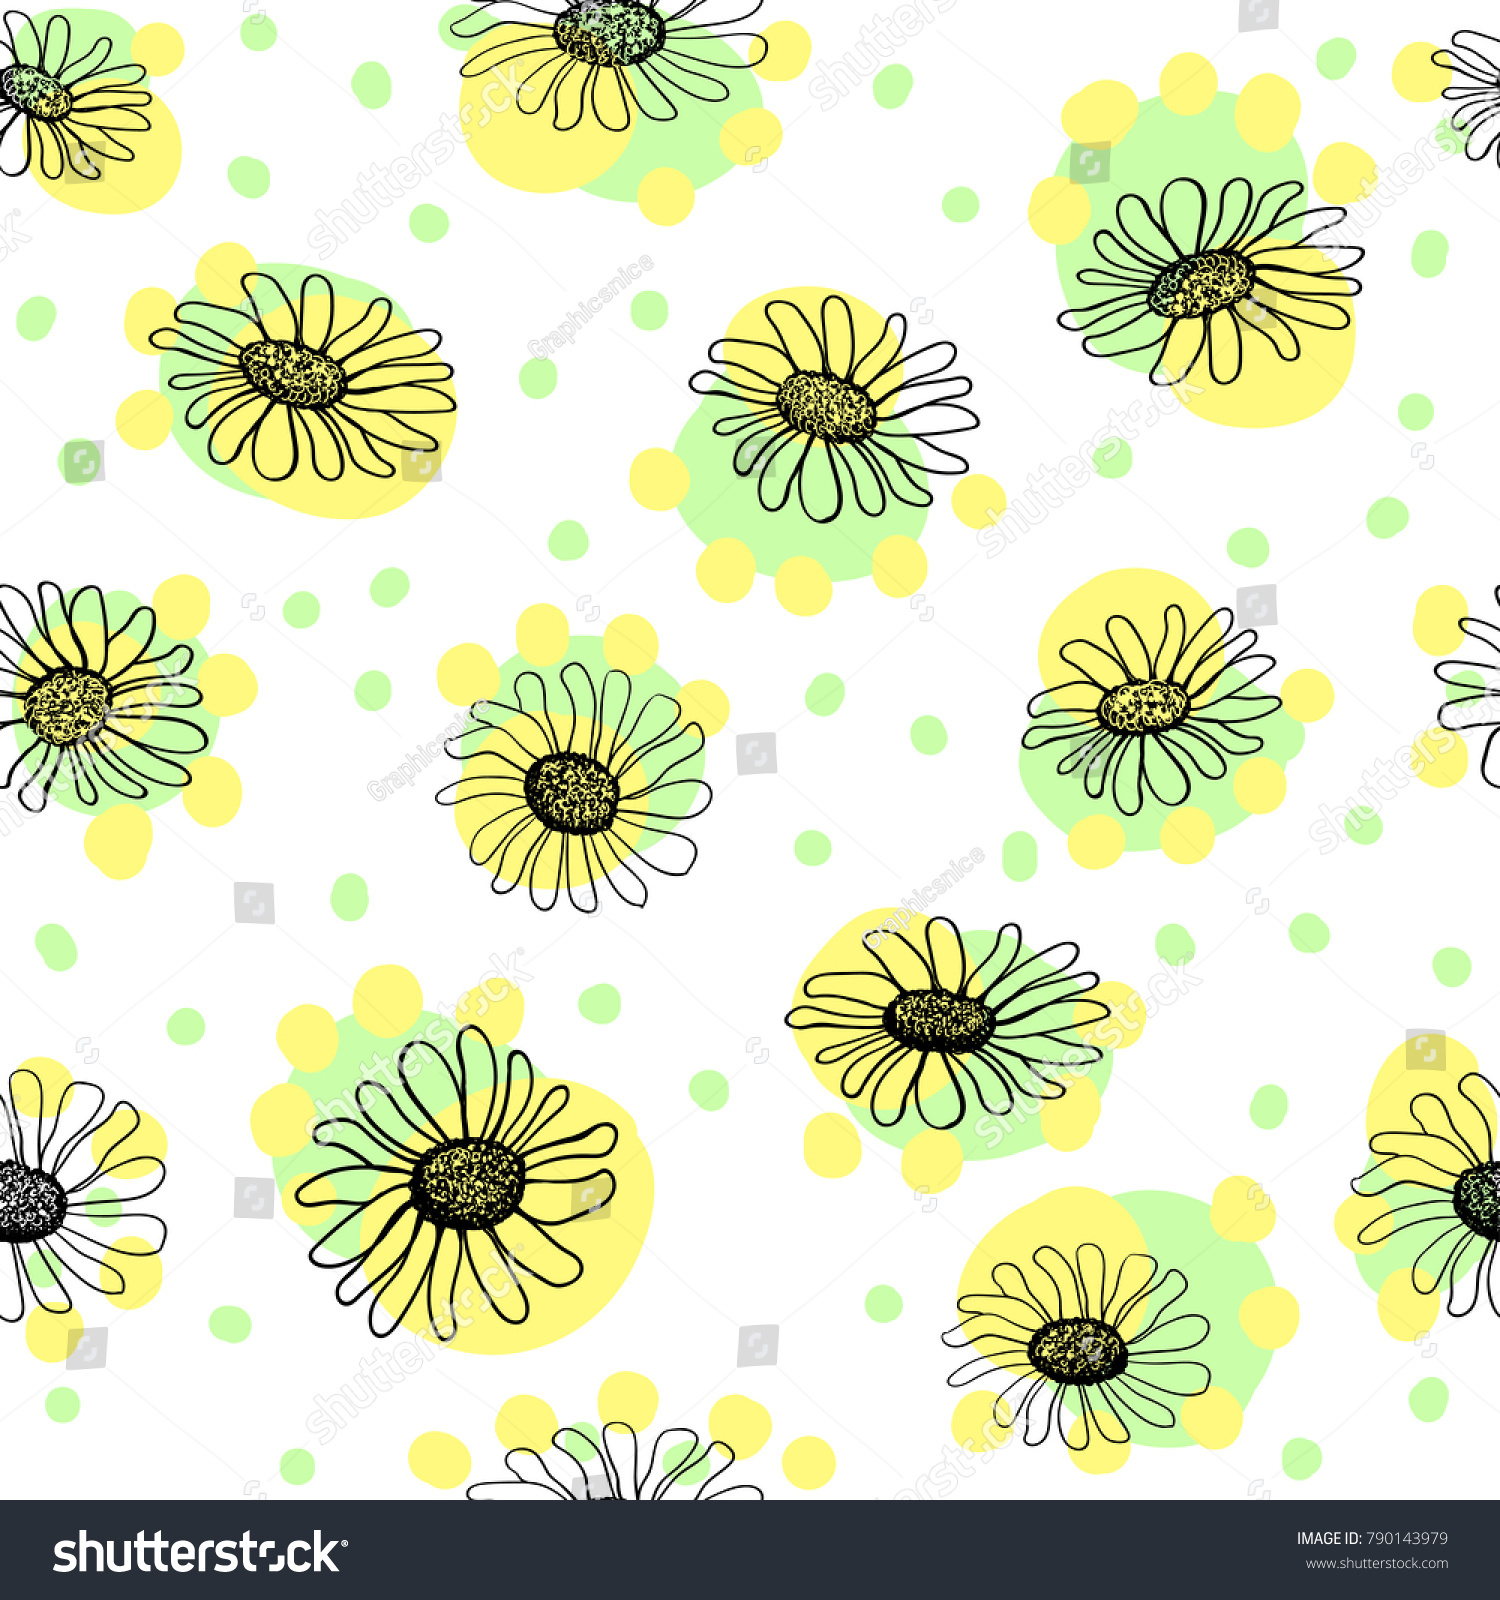 Simple cute hand drawn daisy flower stock vector royalty free simple cute hand drawn daisy flower pattern for textile design wallpaper or card designs izmirmasajfo